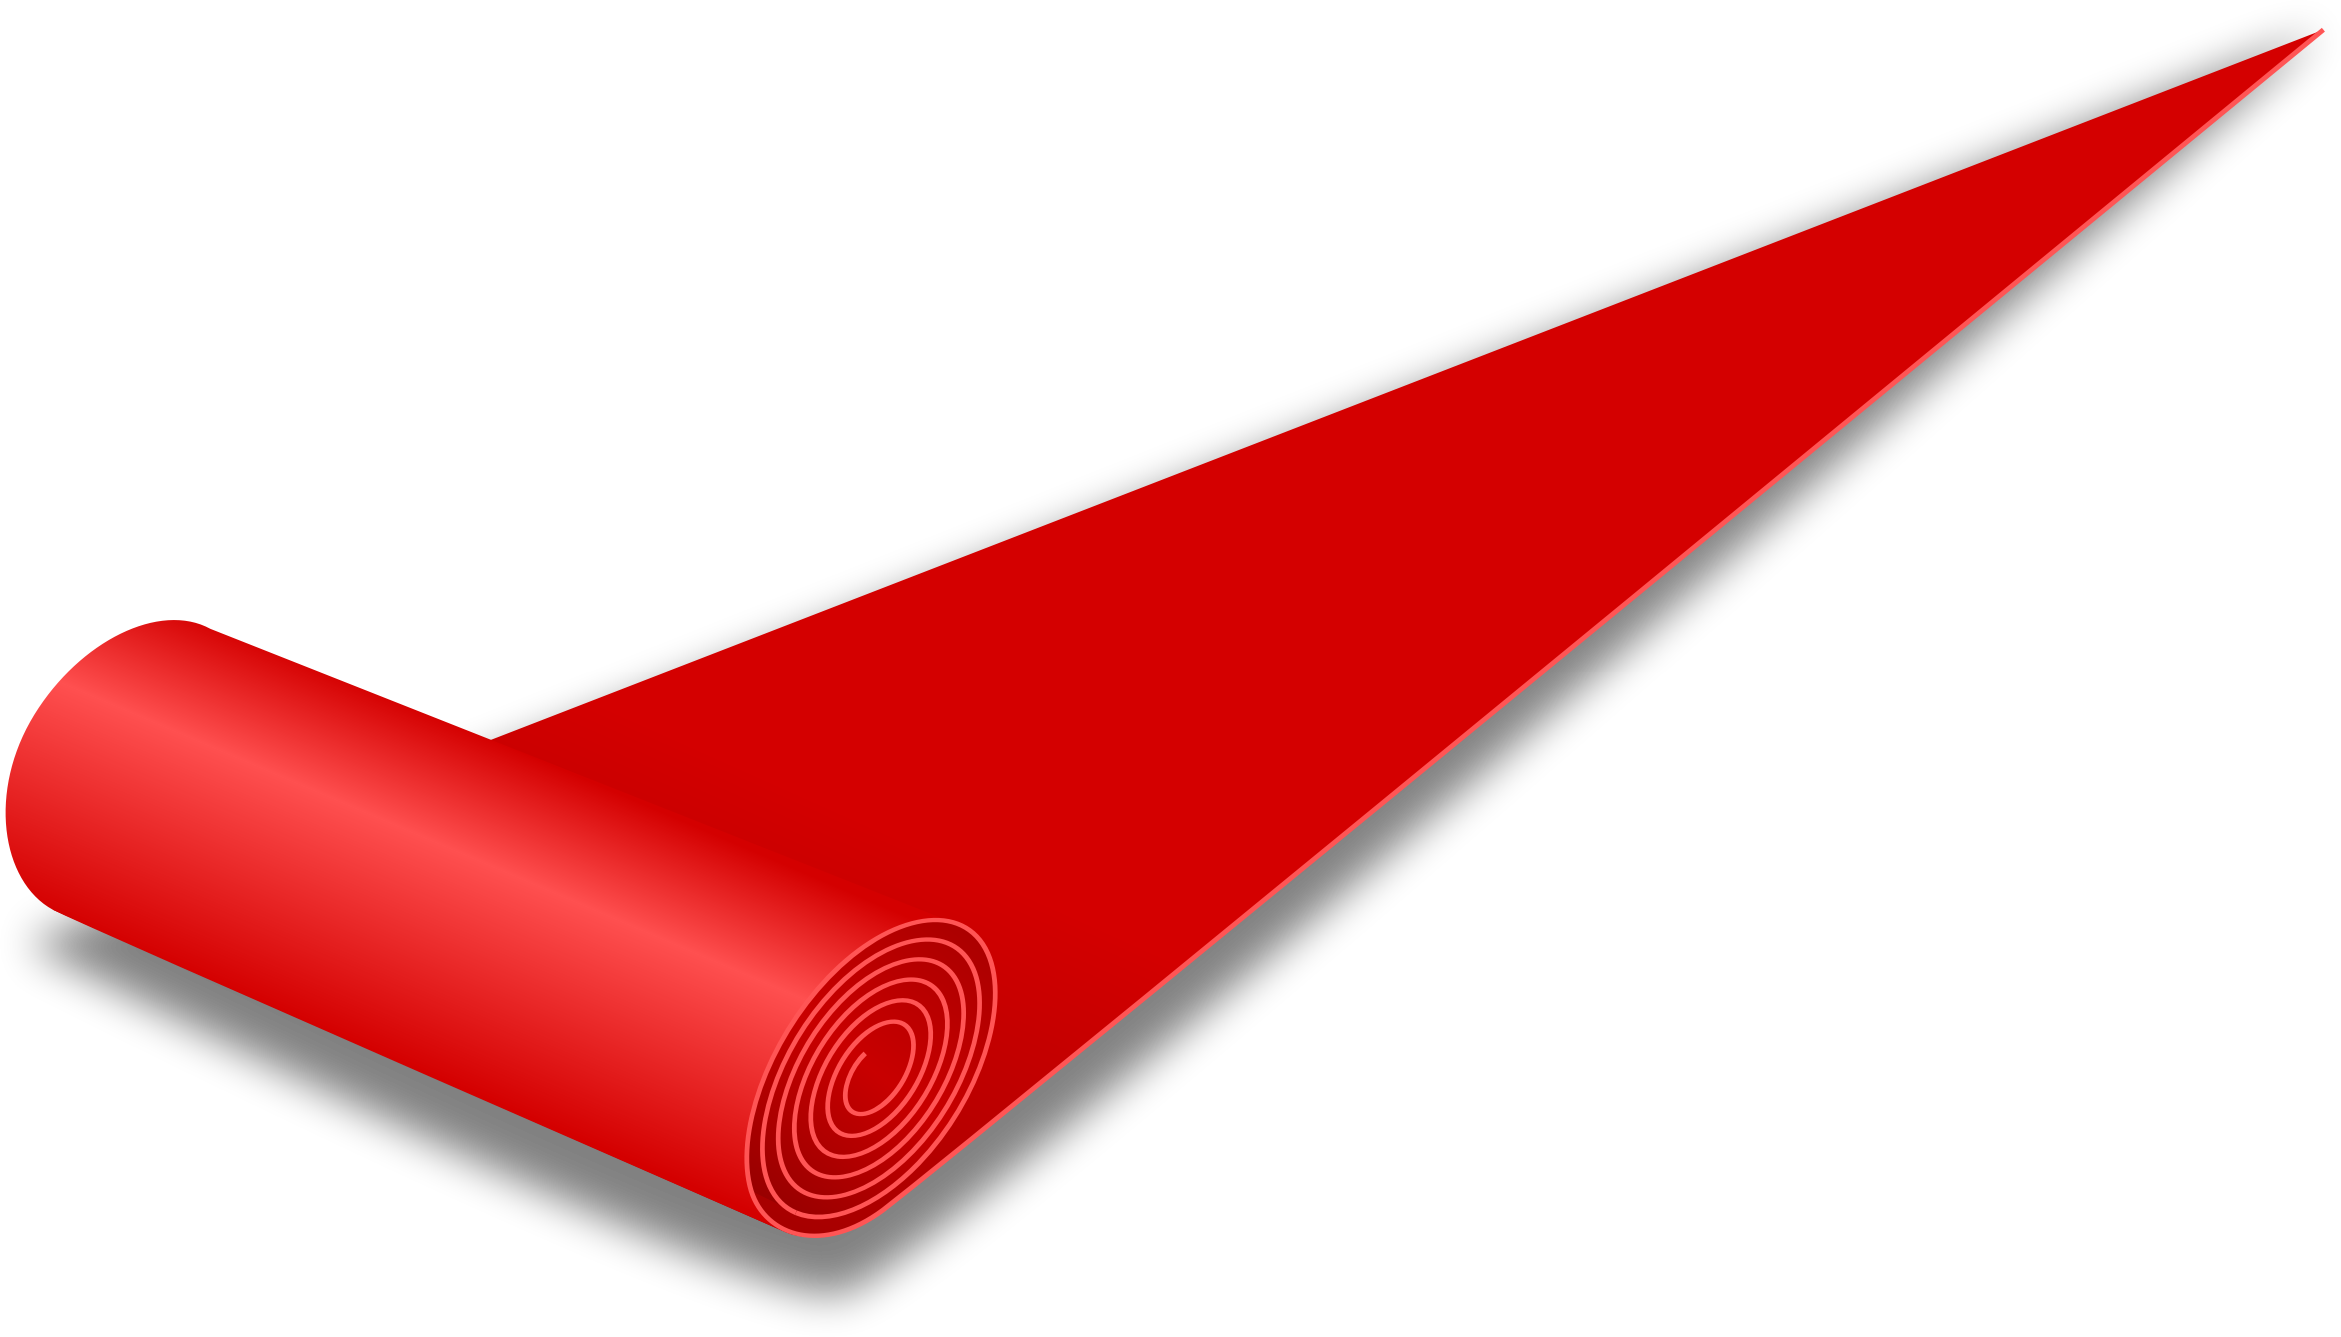 Clipart red carpet for Carpet roll logo